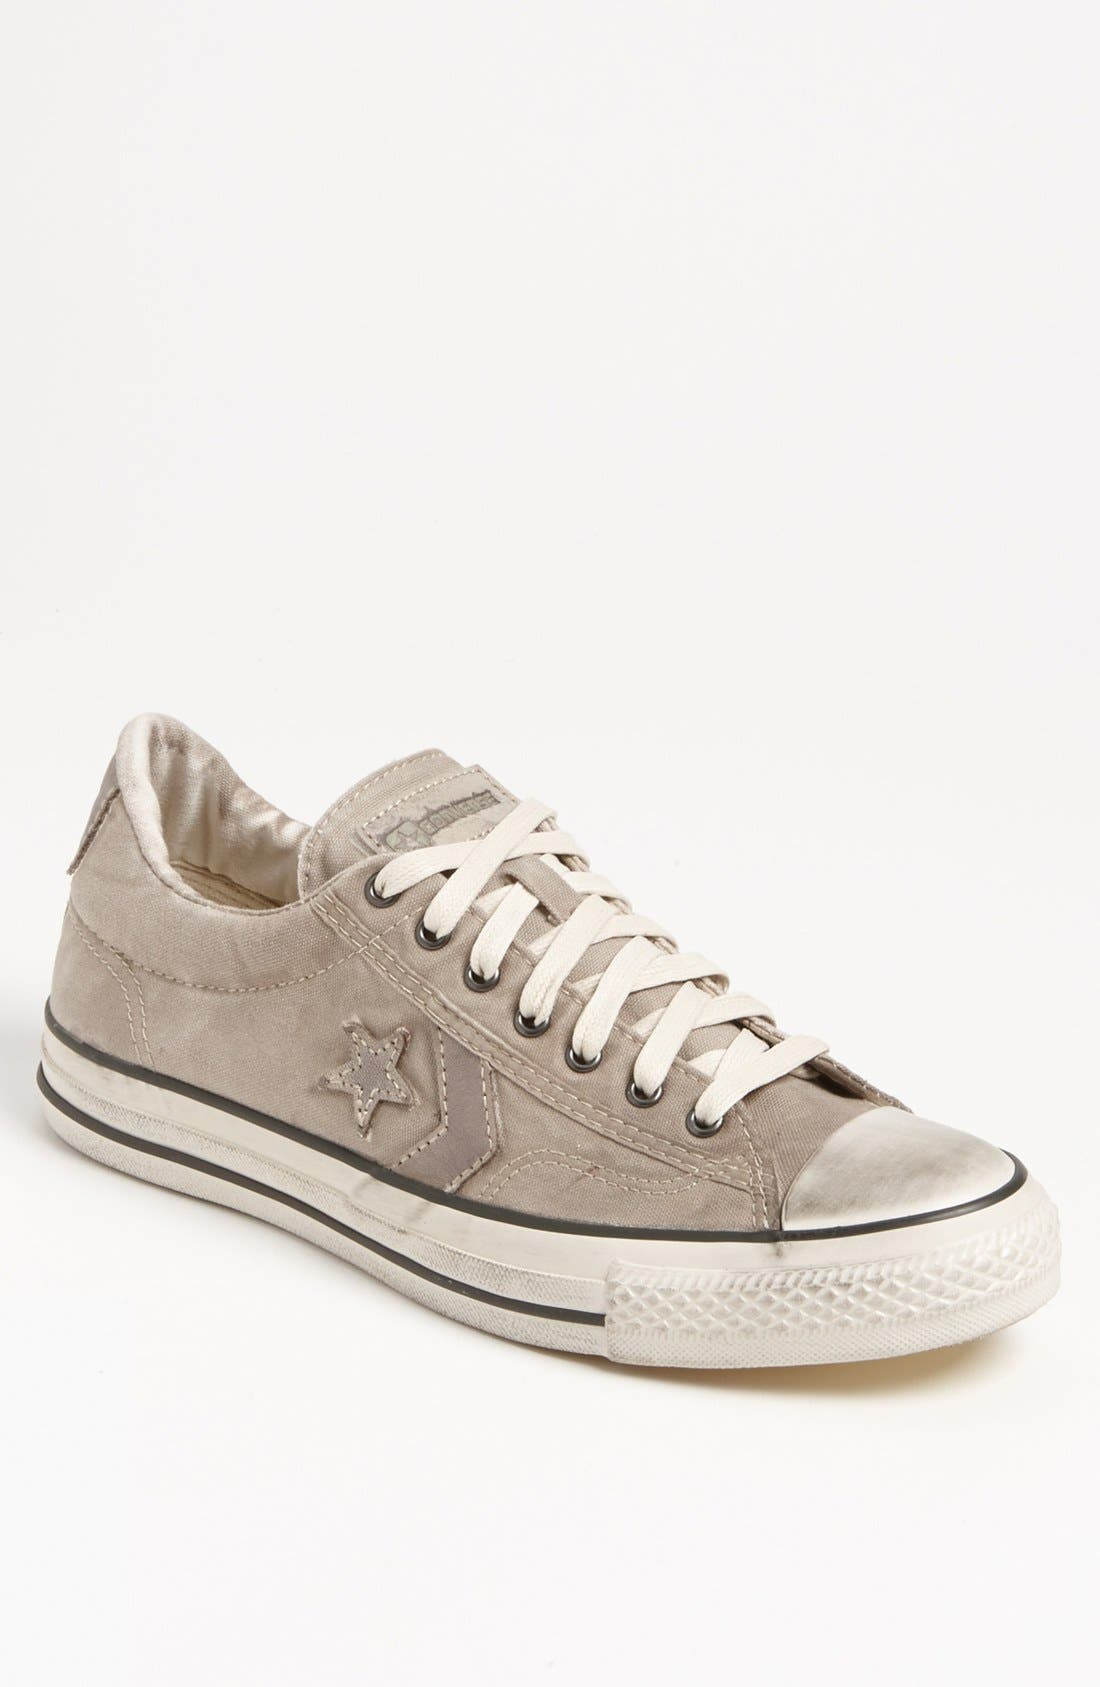 Alternate Image 1 Selected - Converse by John Varvatos 'JV Star Player' Sneaker (Men)